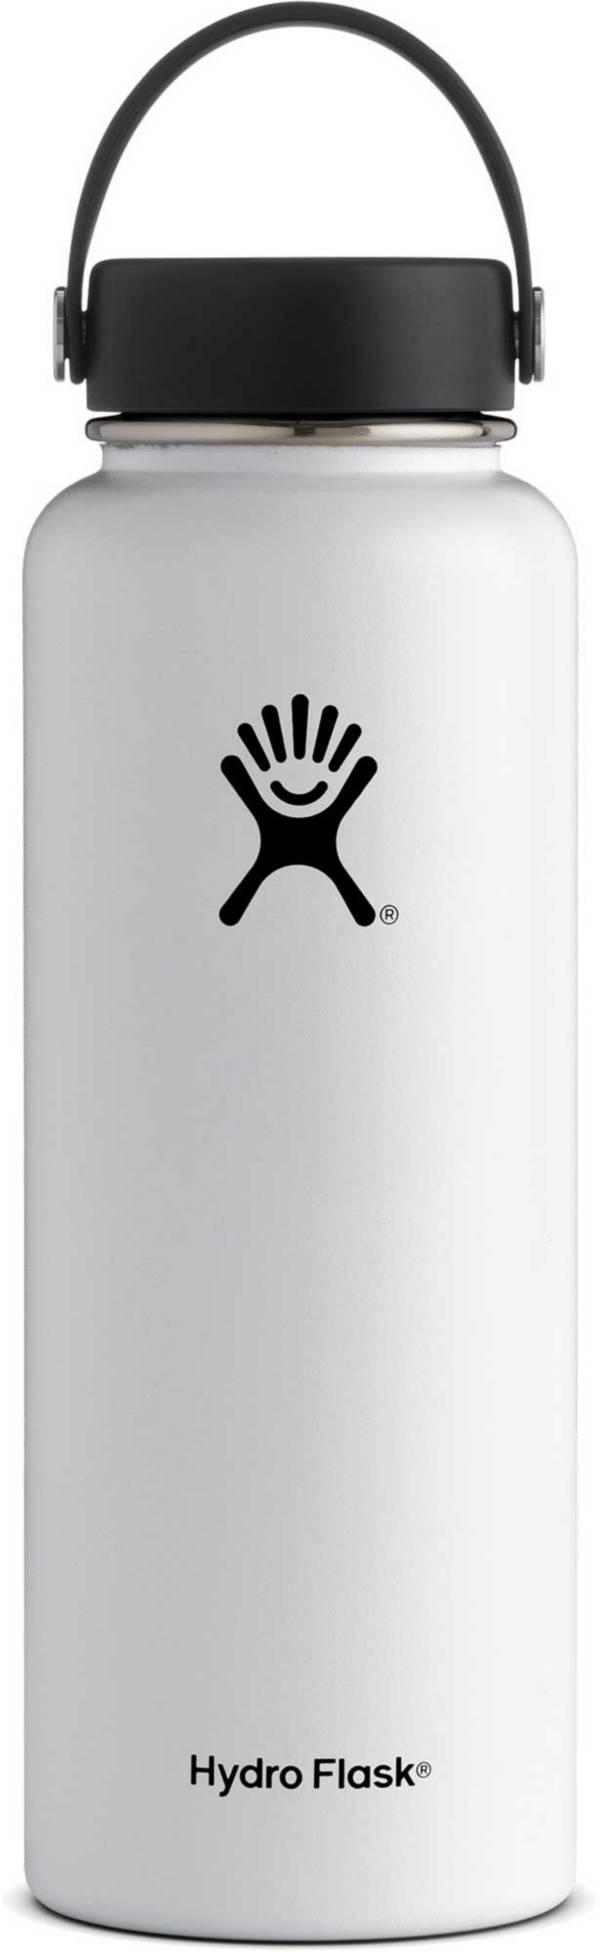 Hydro Flask 40 oz. Wide Mouth Bottle product image